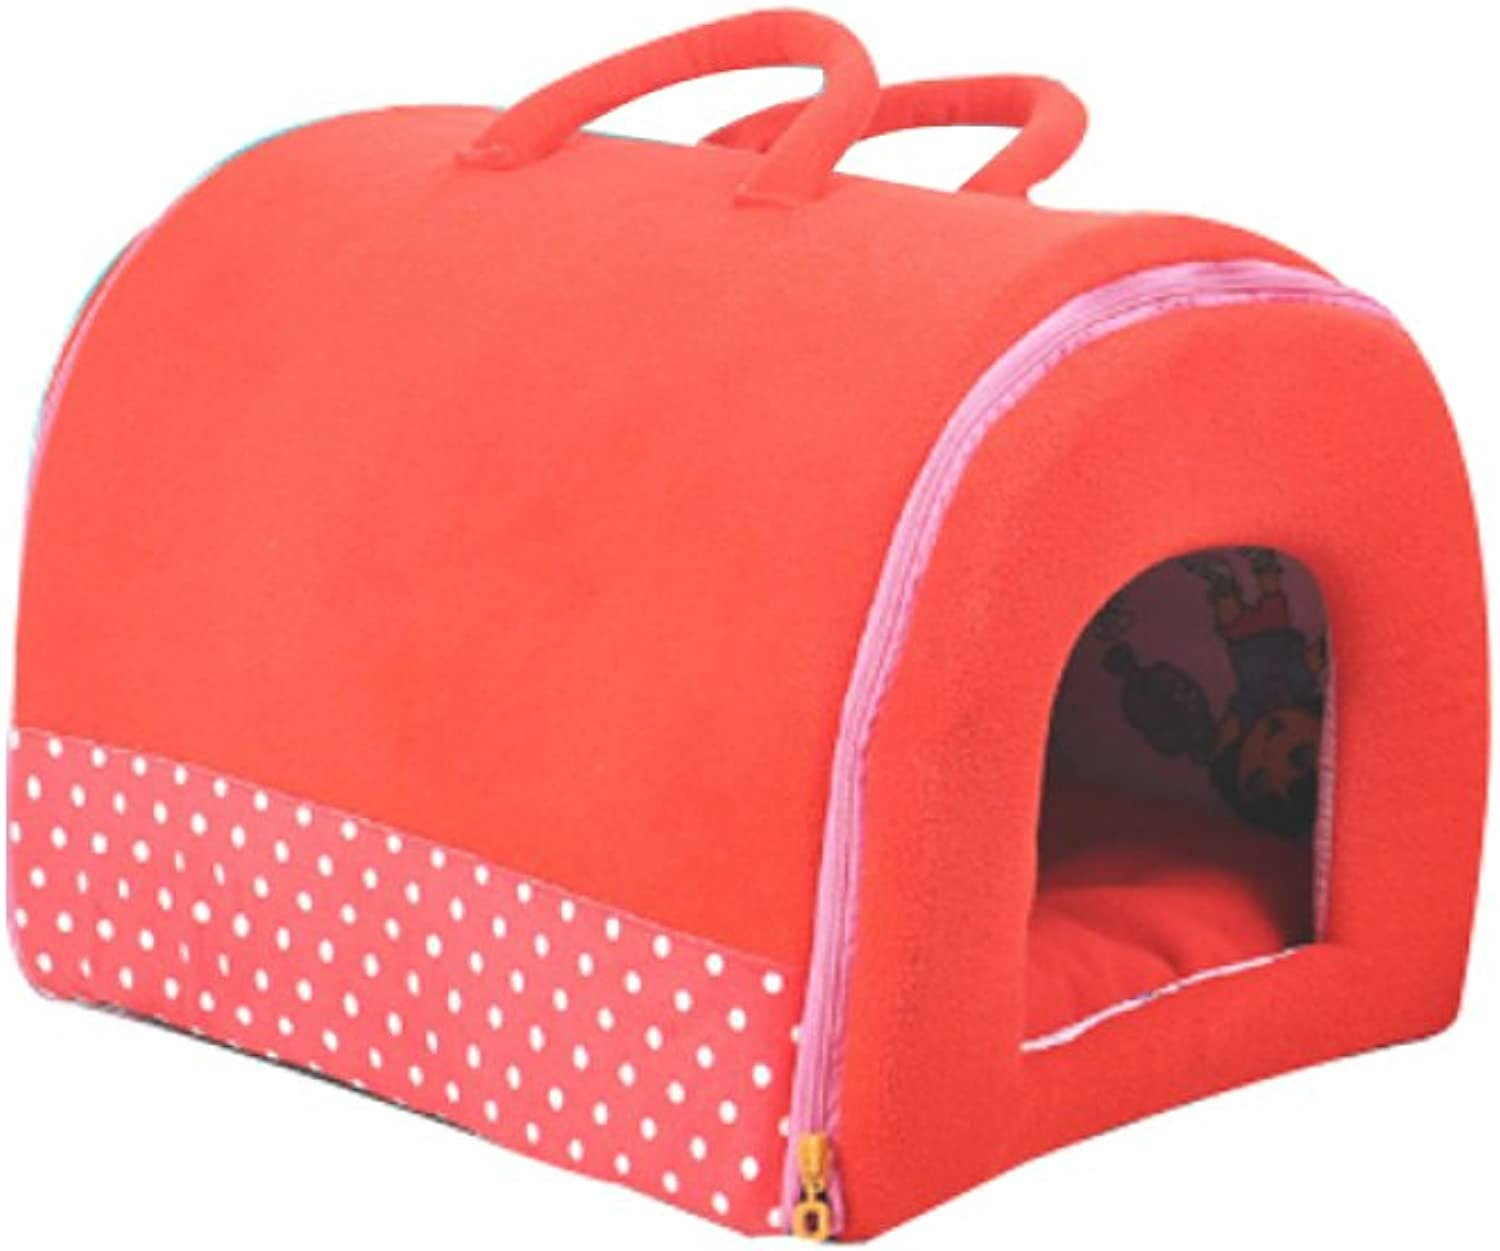 AYCC Pet House, Soft And Warm 2 In 1 Pet House, Skid Dog Bed, Portable, Collapsible Soft Winter Sleeping Bag,S